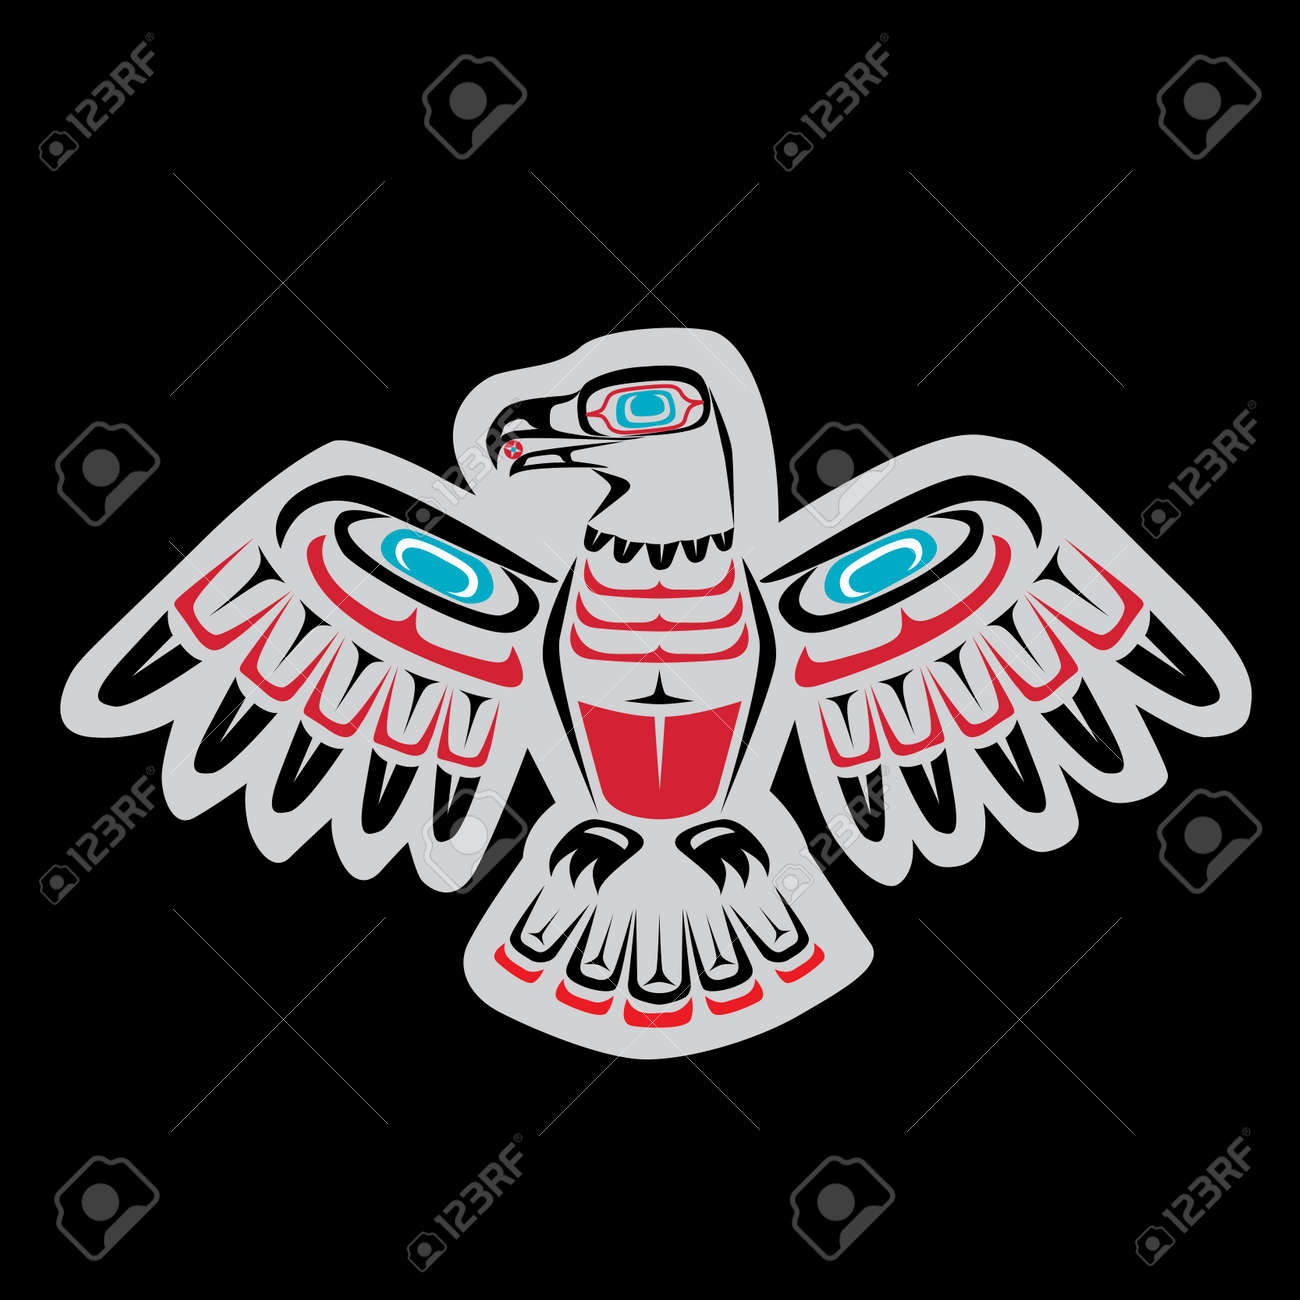 Native american first nations eagle art featuring coastal salish native american first nations eagle art featuring coastal salish colors and forms stock vector biocorpaavc Gallery